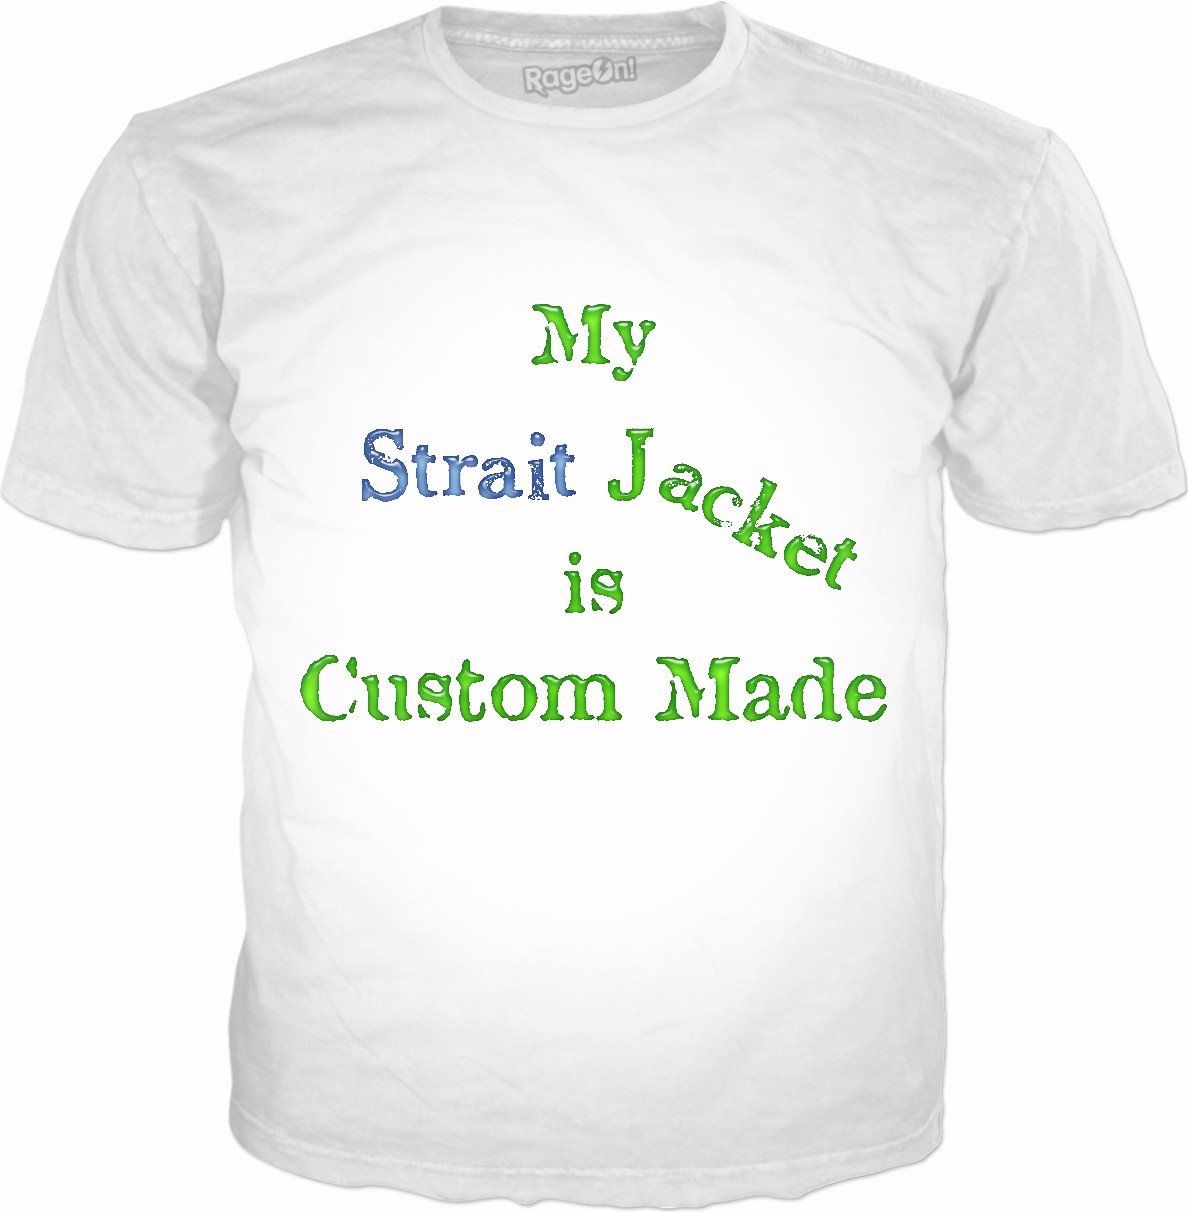 Check out my new product https://www.rageon.com/products/my-strait-jacket-is-custom-made?aff=HfKQ on RageOn!